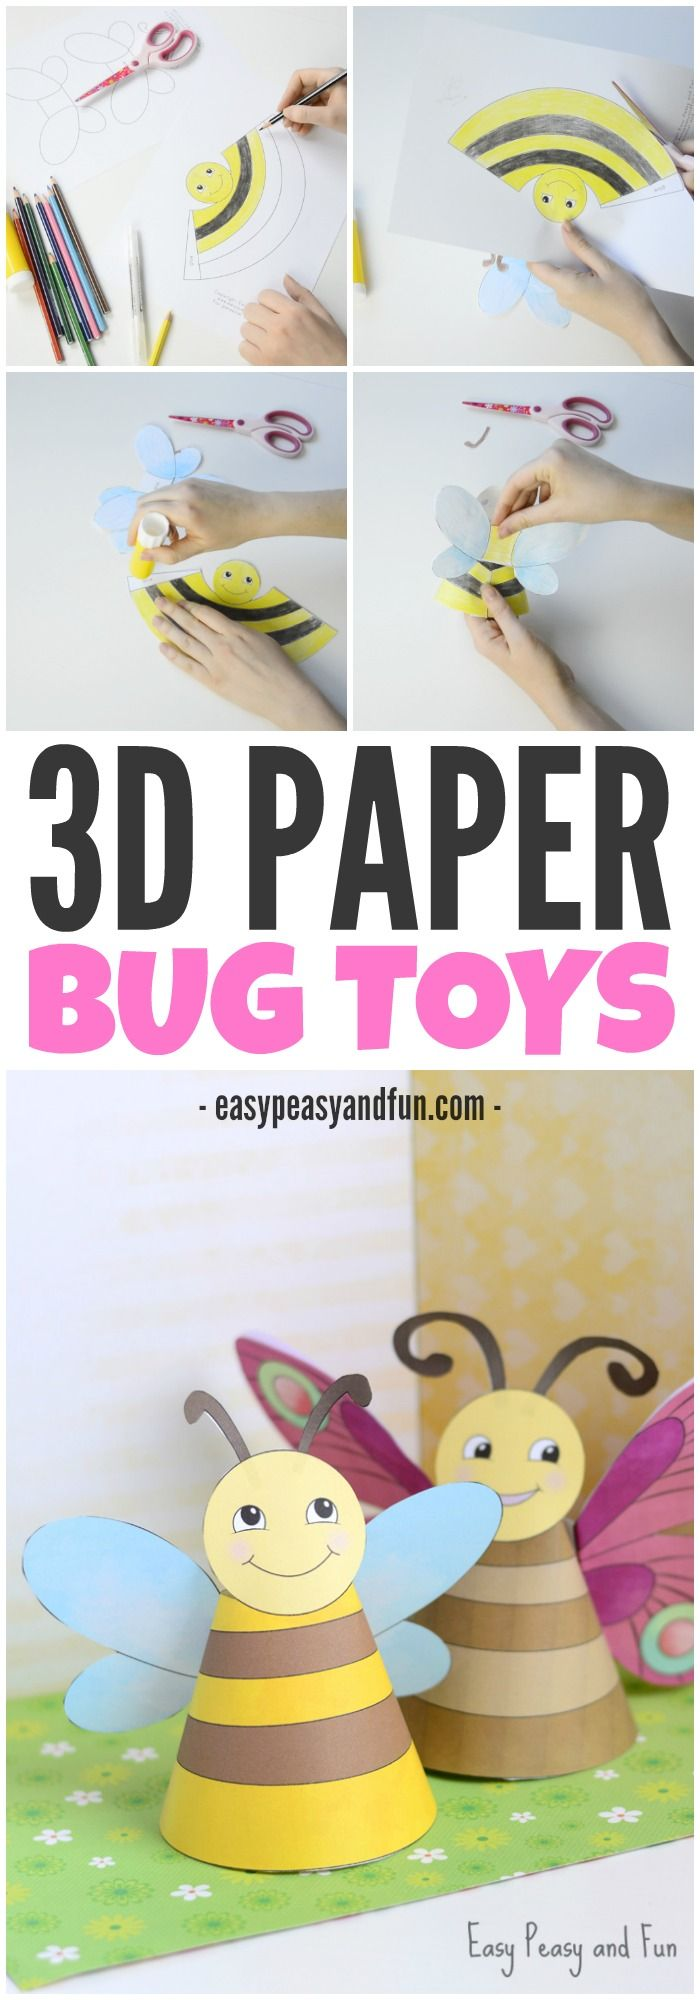 Adorable Paper bug toys! A cute 3D craft for kids to make this spring!